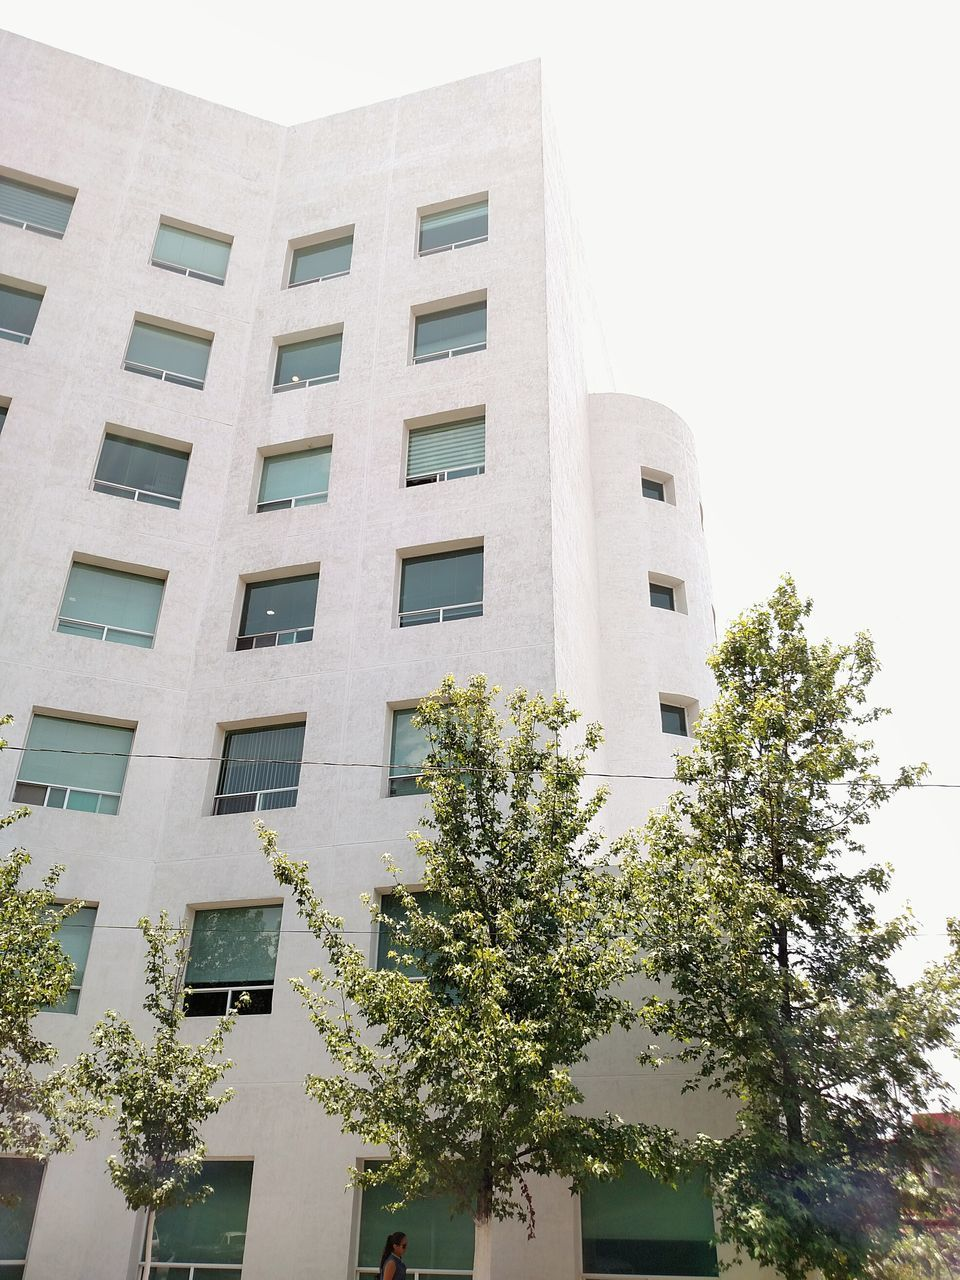 architecture, building exterior, built structure, low angle view, window, day, no people, outdoors, growth, tree, city